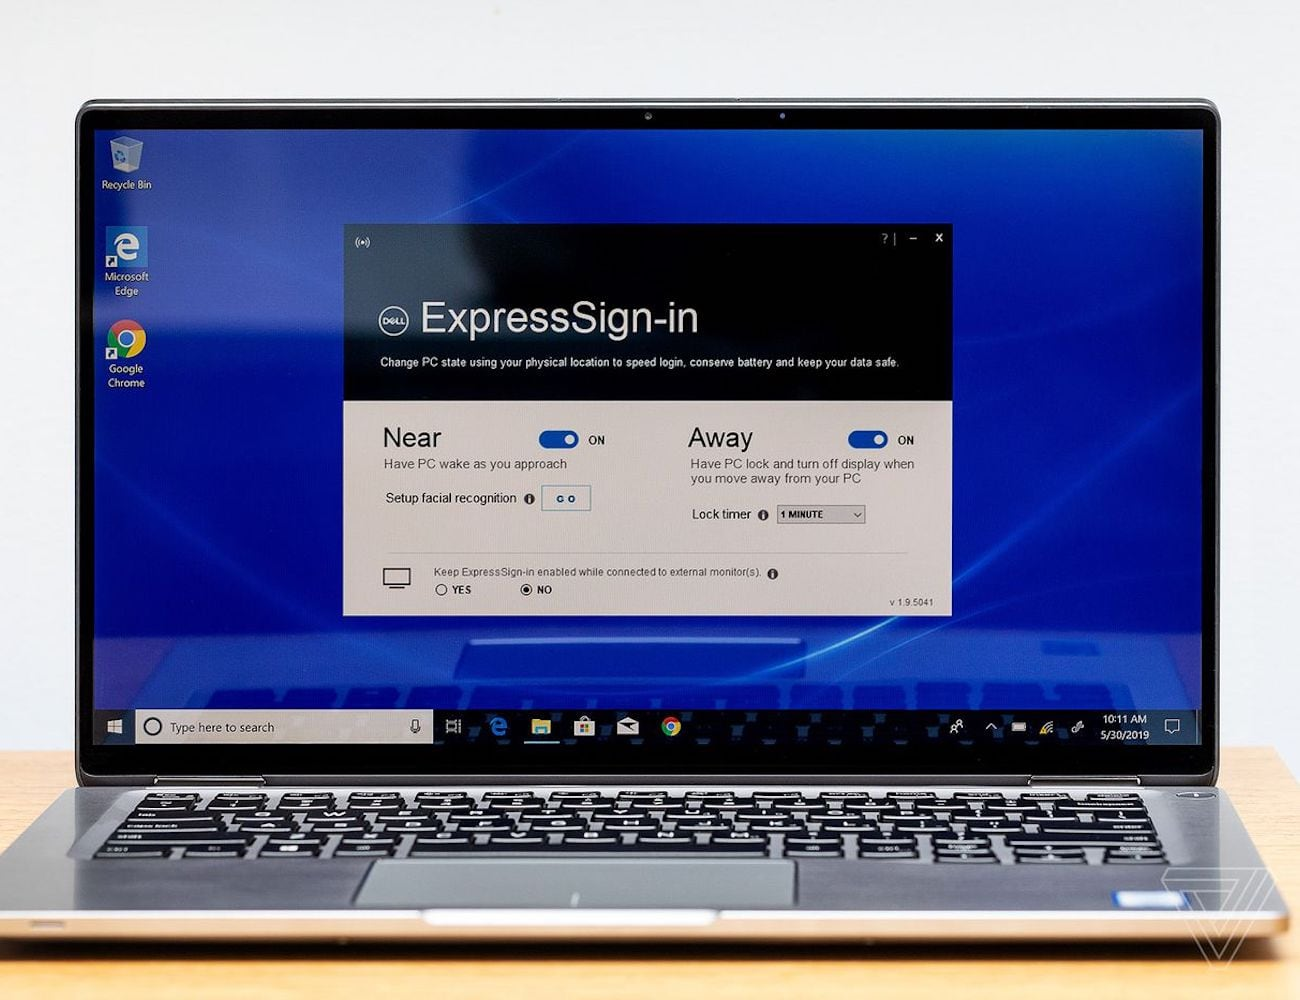 Dell Latitude 7400 2-in-1 Compact Business Laptop lets you work faster than ever